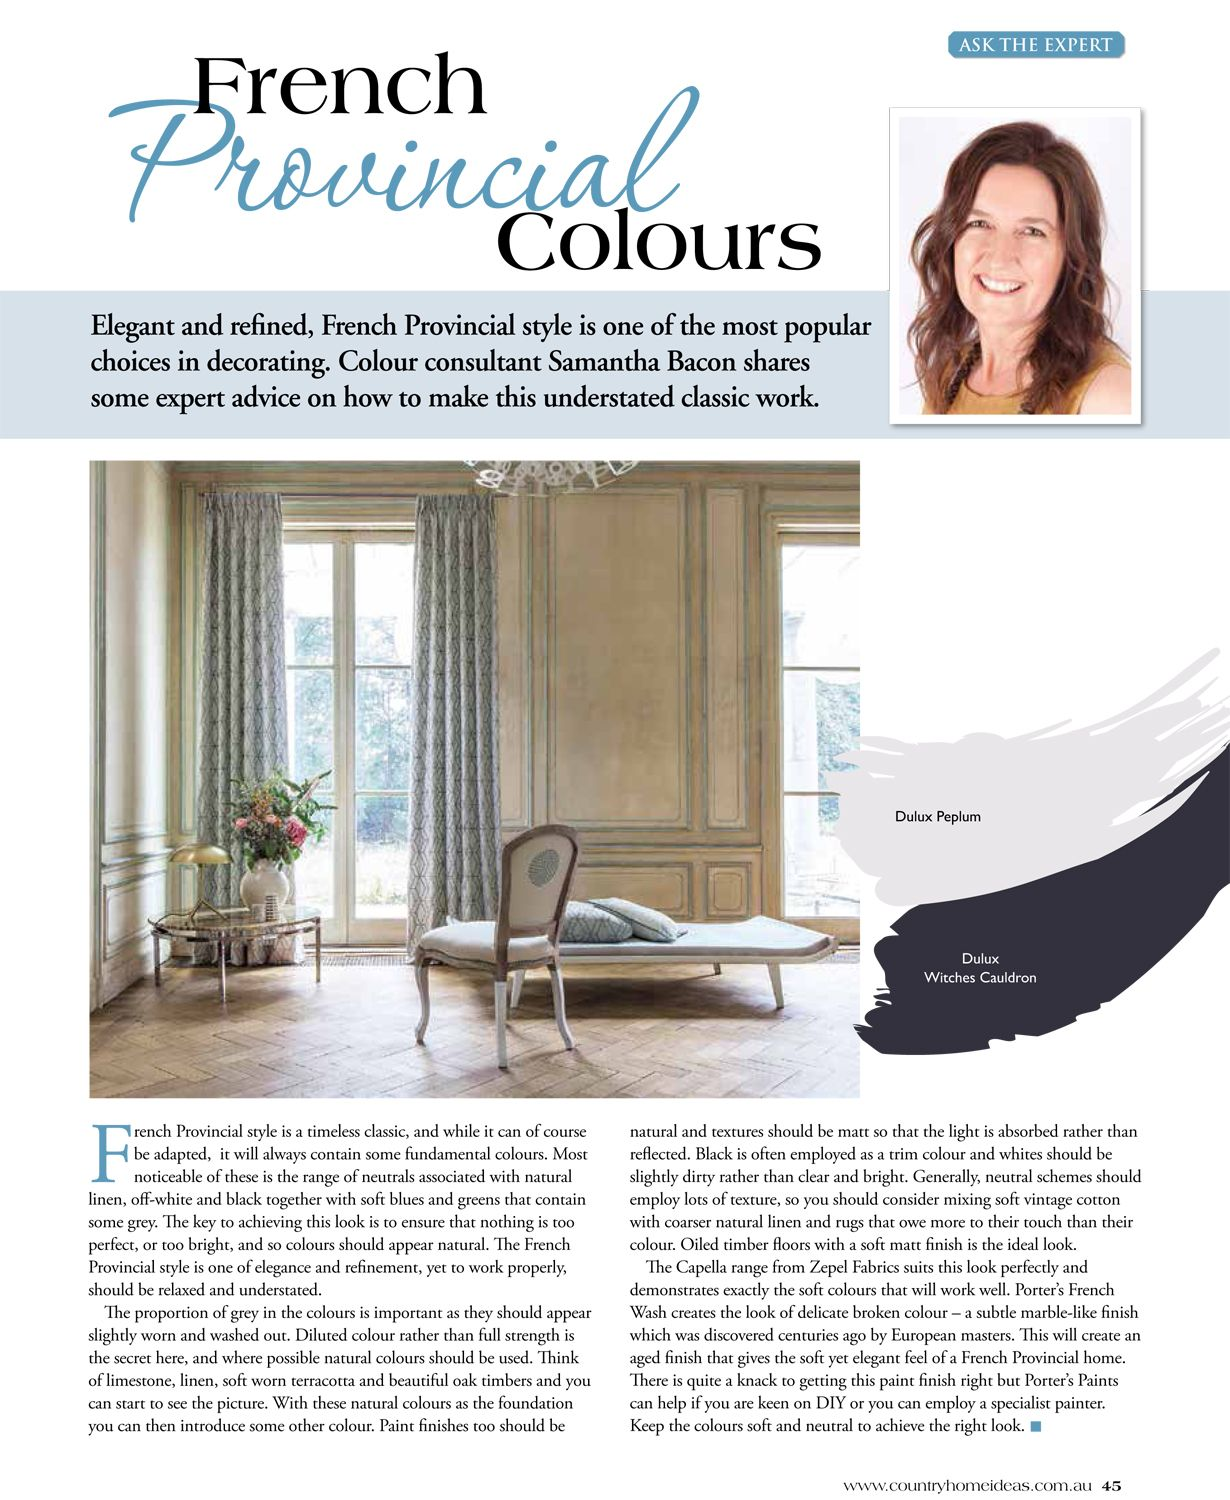 Country Home Ideas - French Provincial Colours | French provincial ...